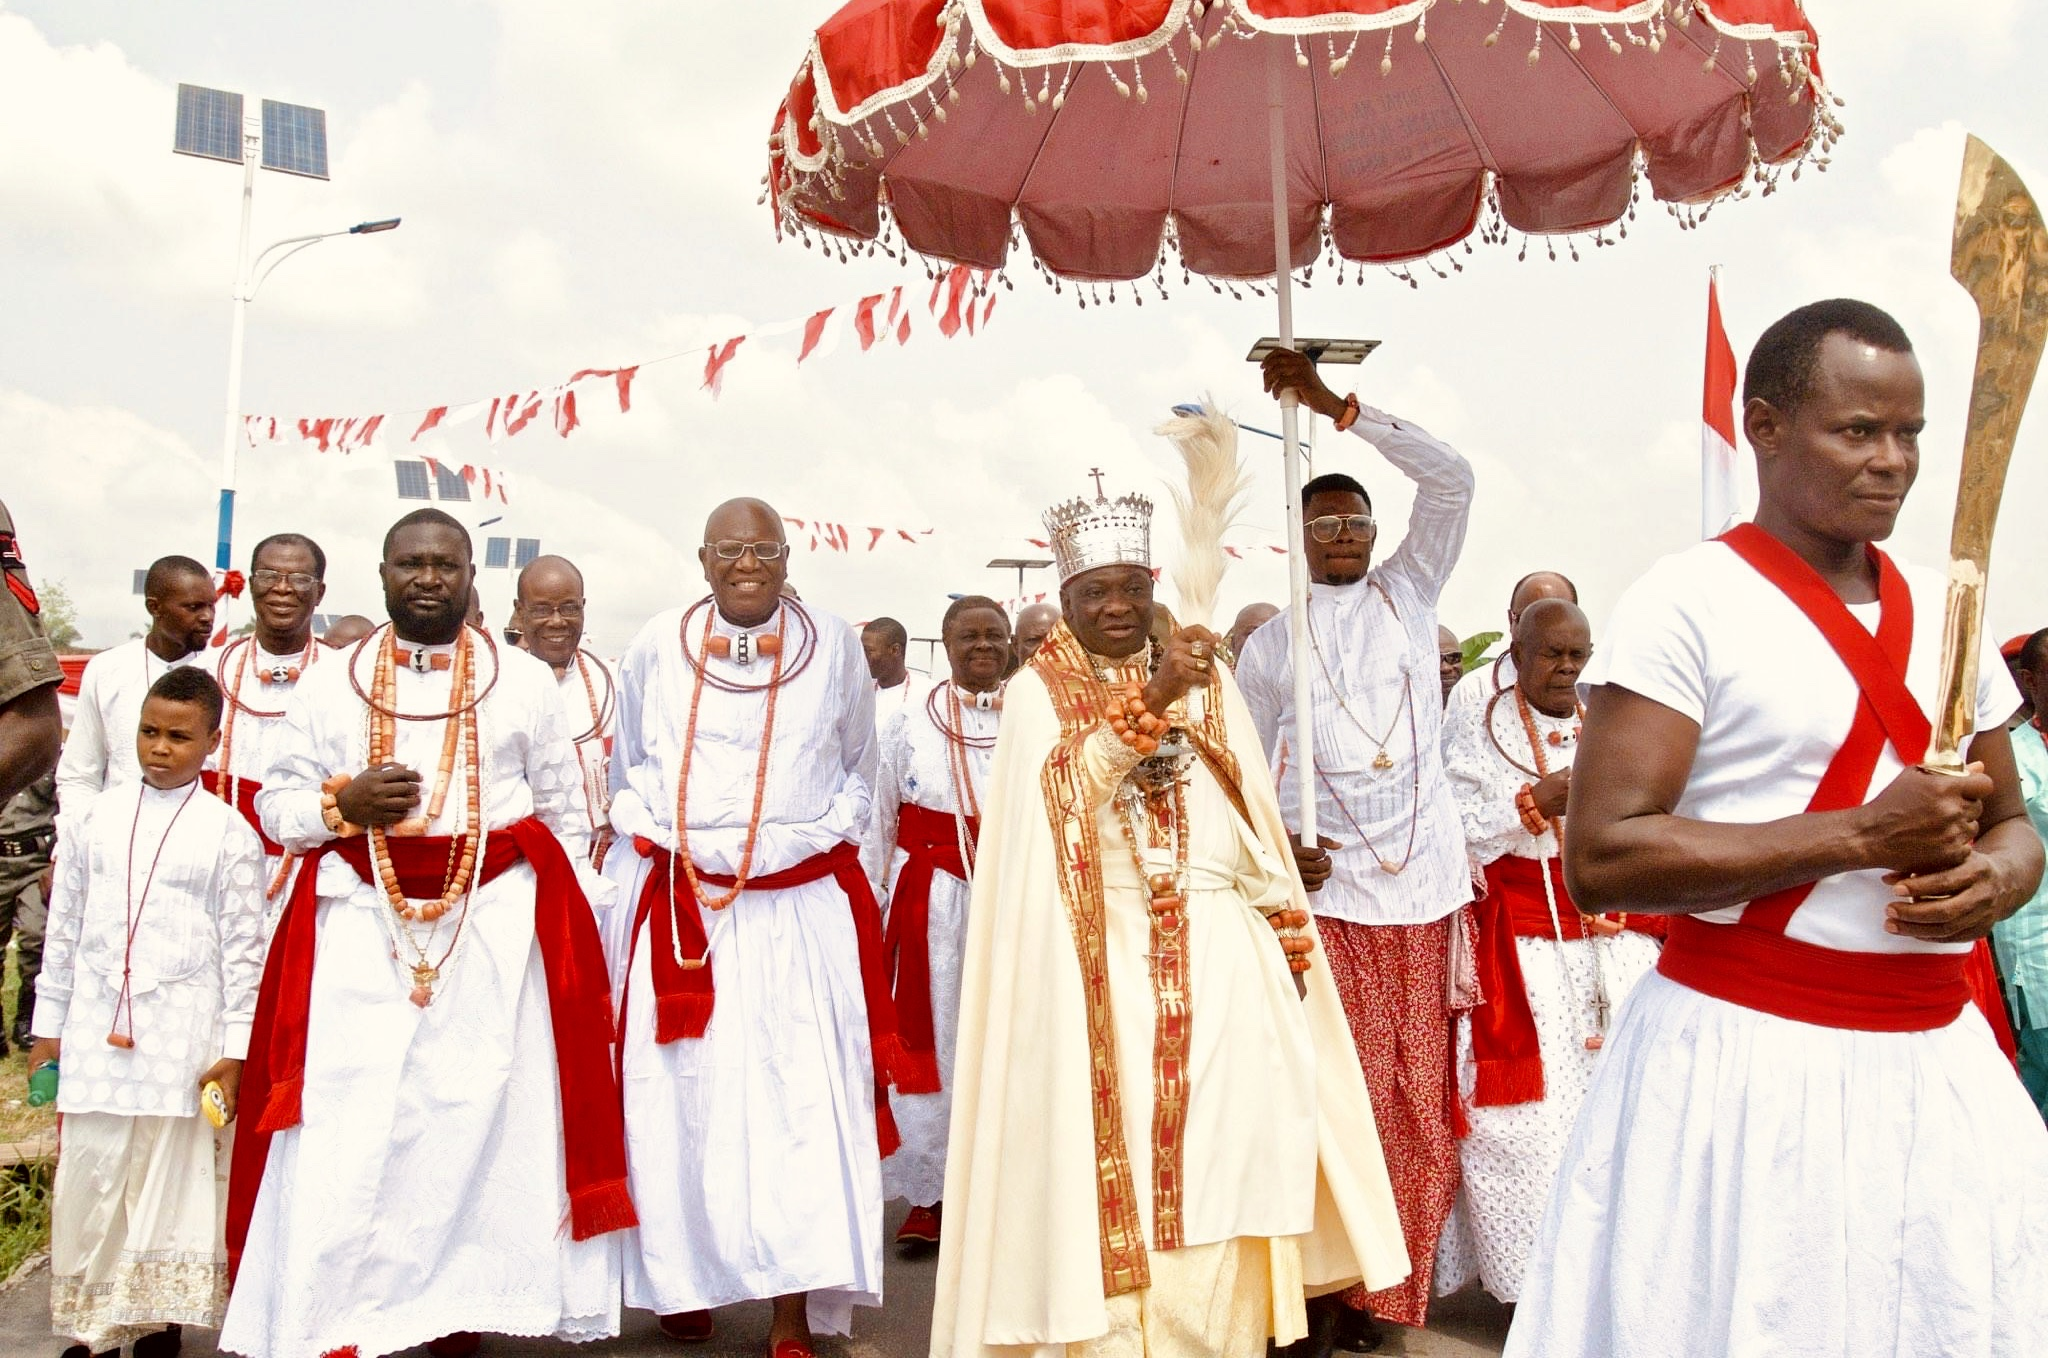 A procession for the Coronation Anniversary of the Olu of Warri Ogiame Ikenwoli at Ode-Itsekiri in 2016.